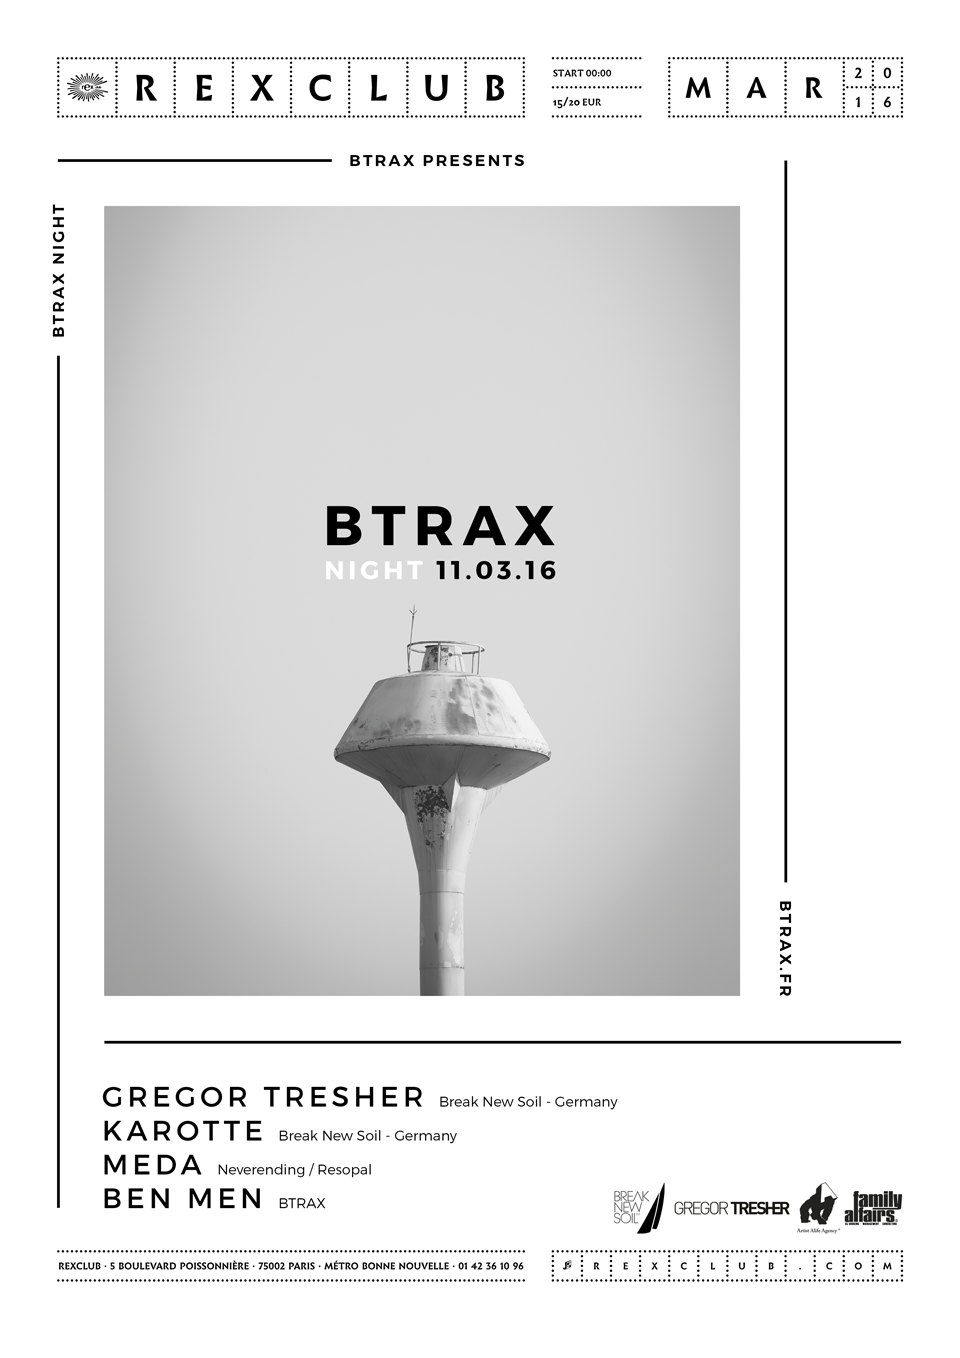 btrax_night_20160311